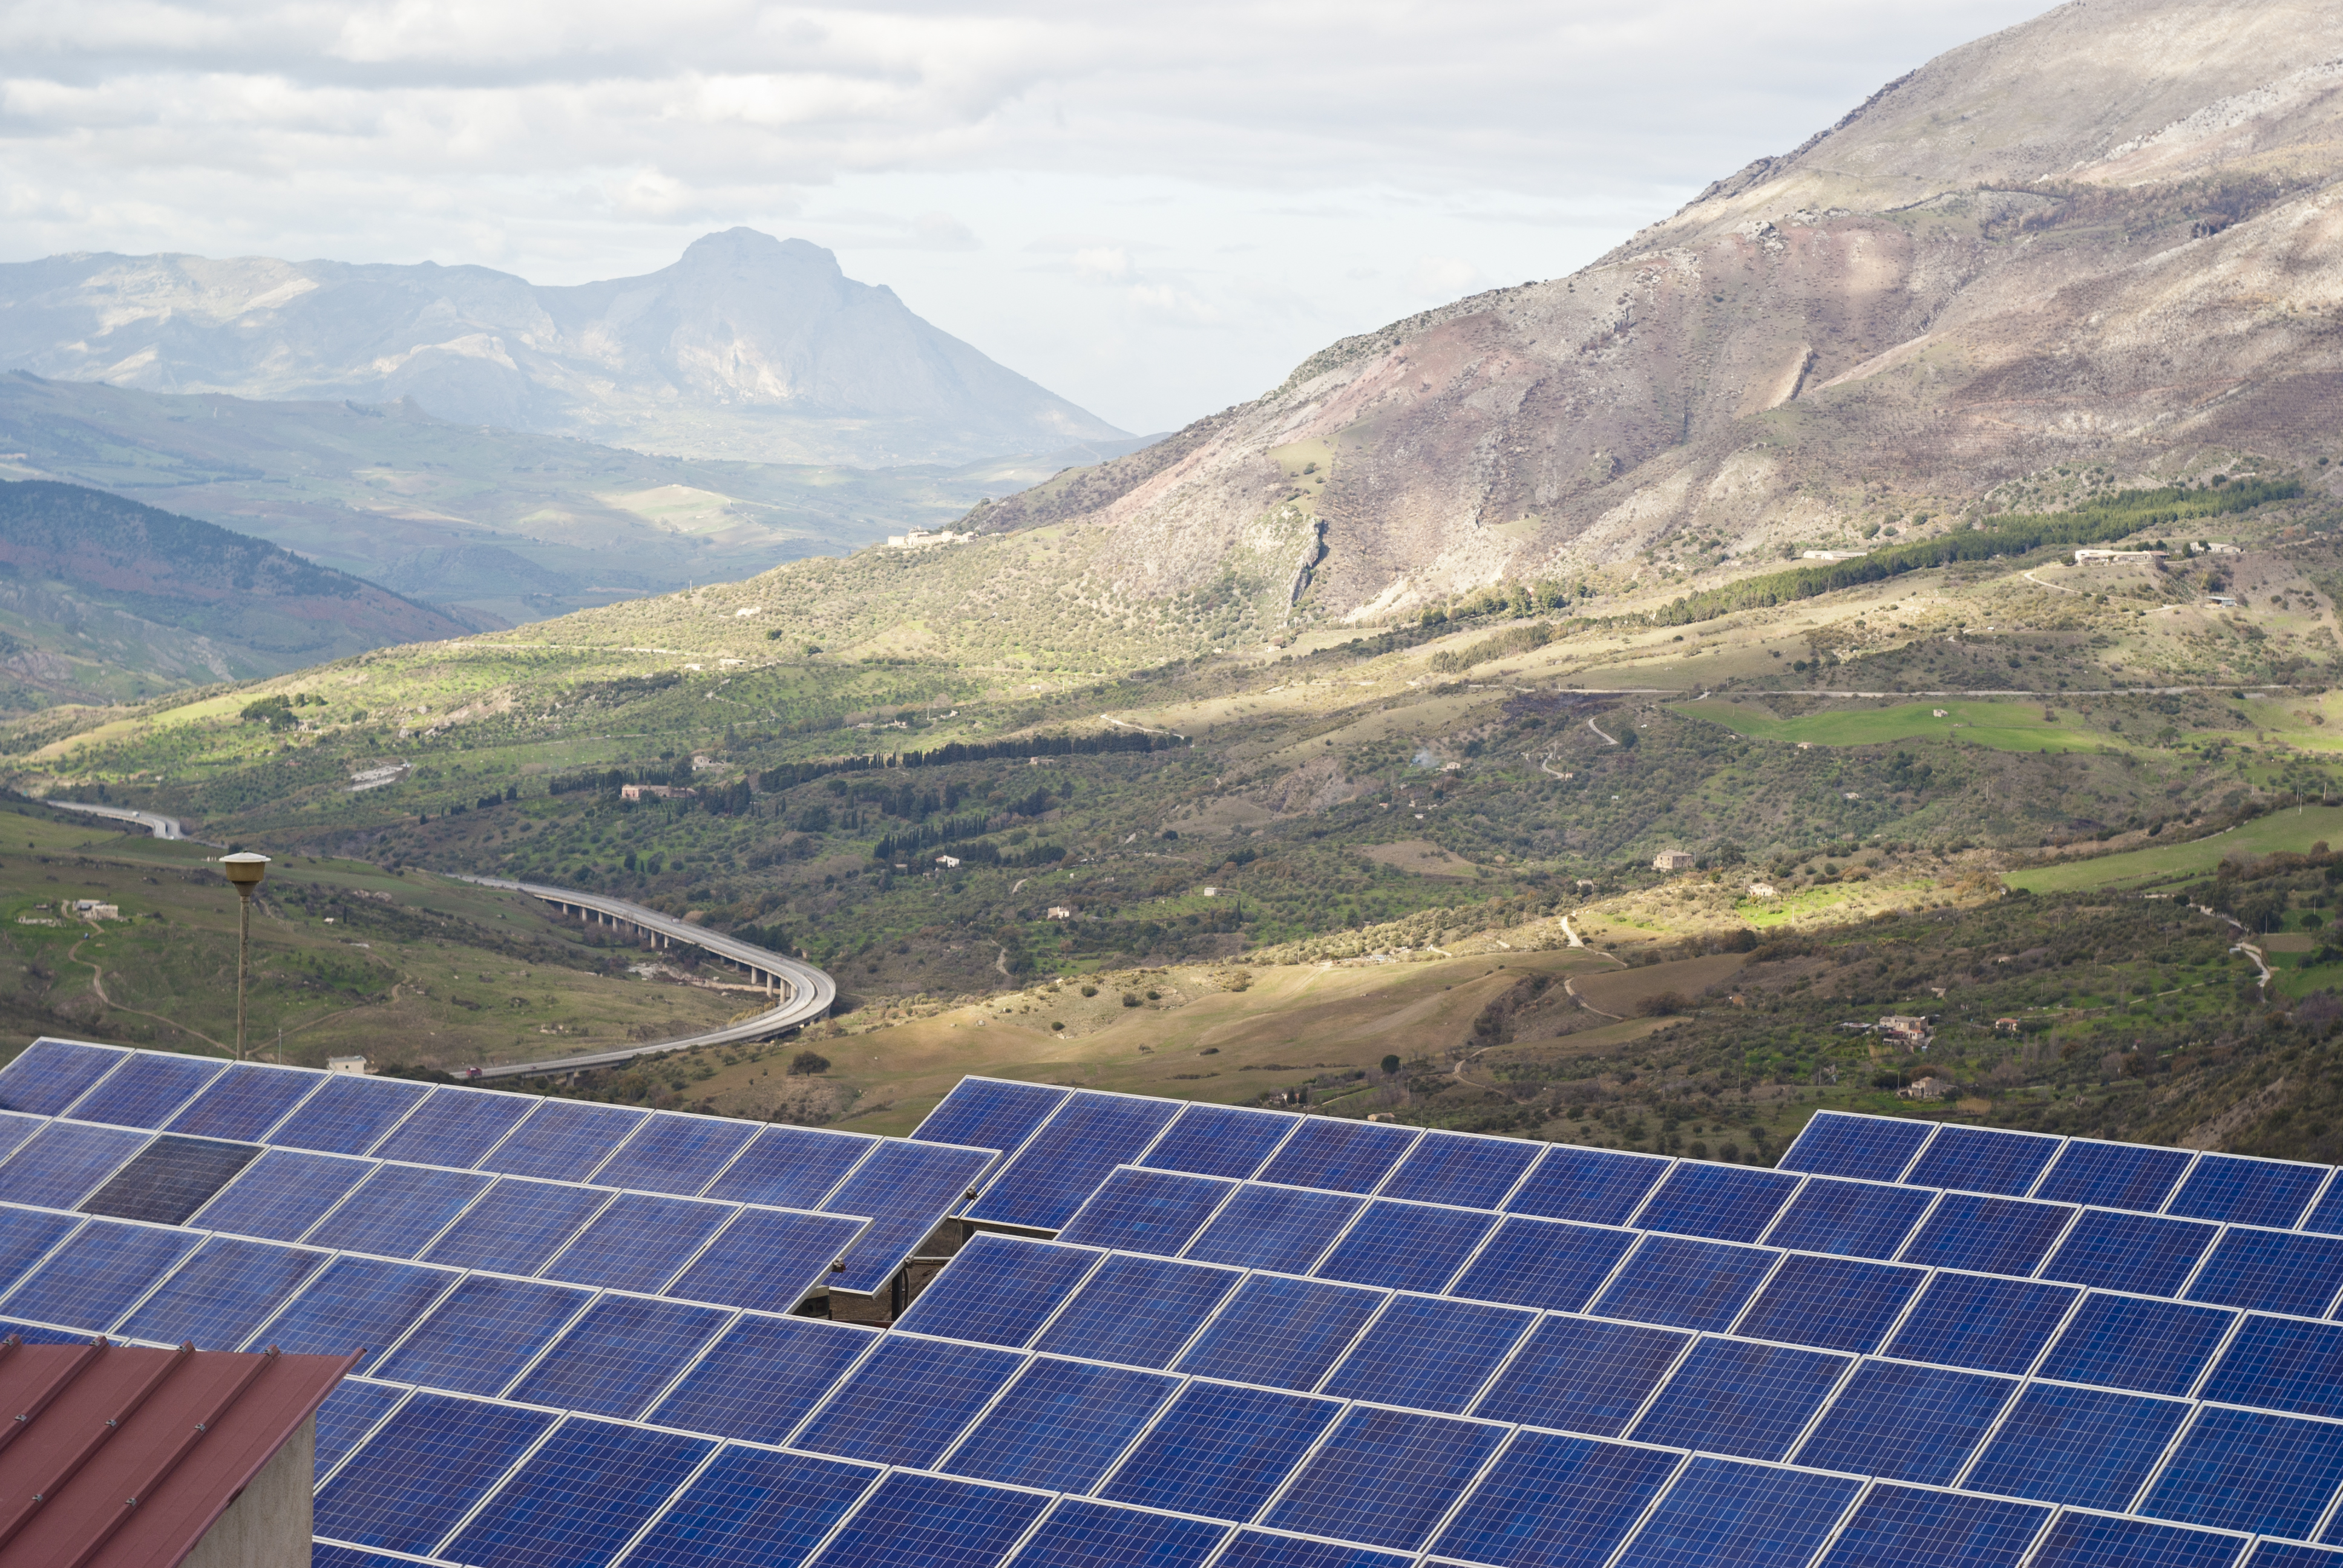 Solar Panels in Sicily Mountains